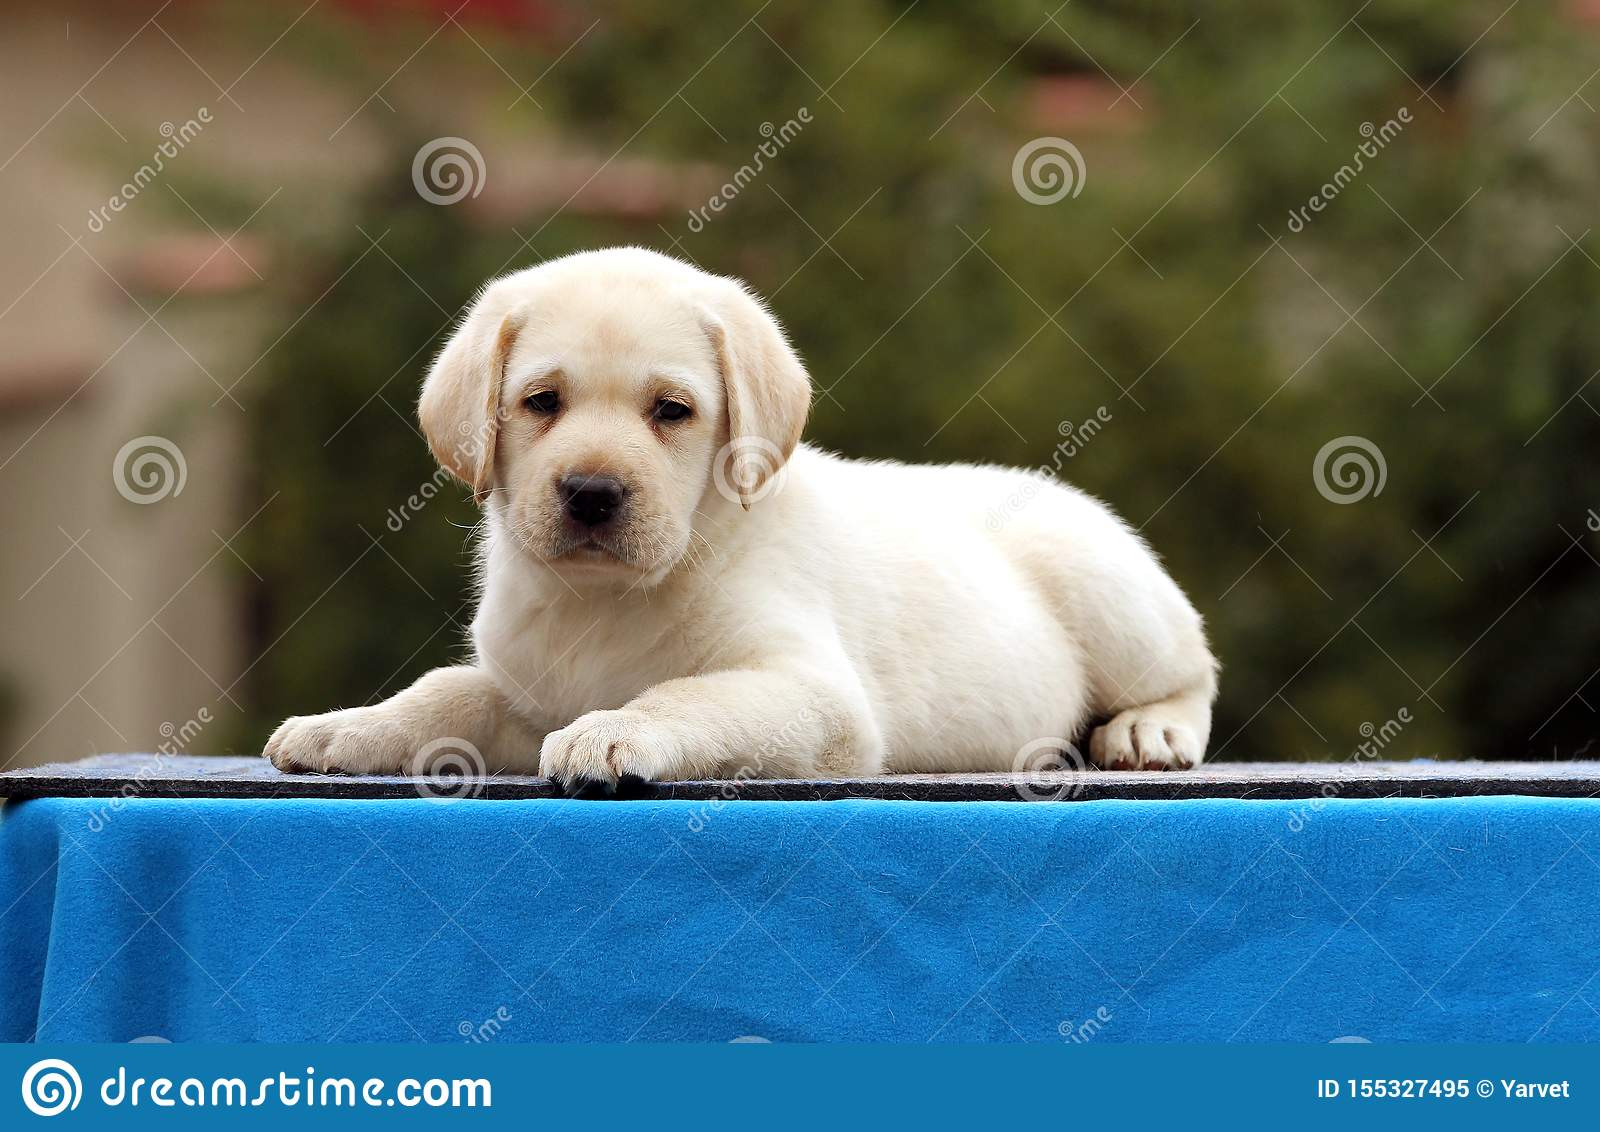 A Cute Nice Labrador Puppy On A Blue Background Stock Image Image Of Happiness Retriever 155327495